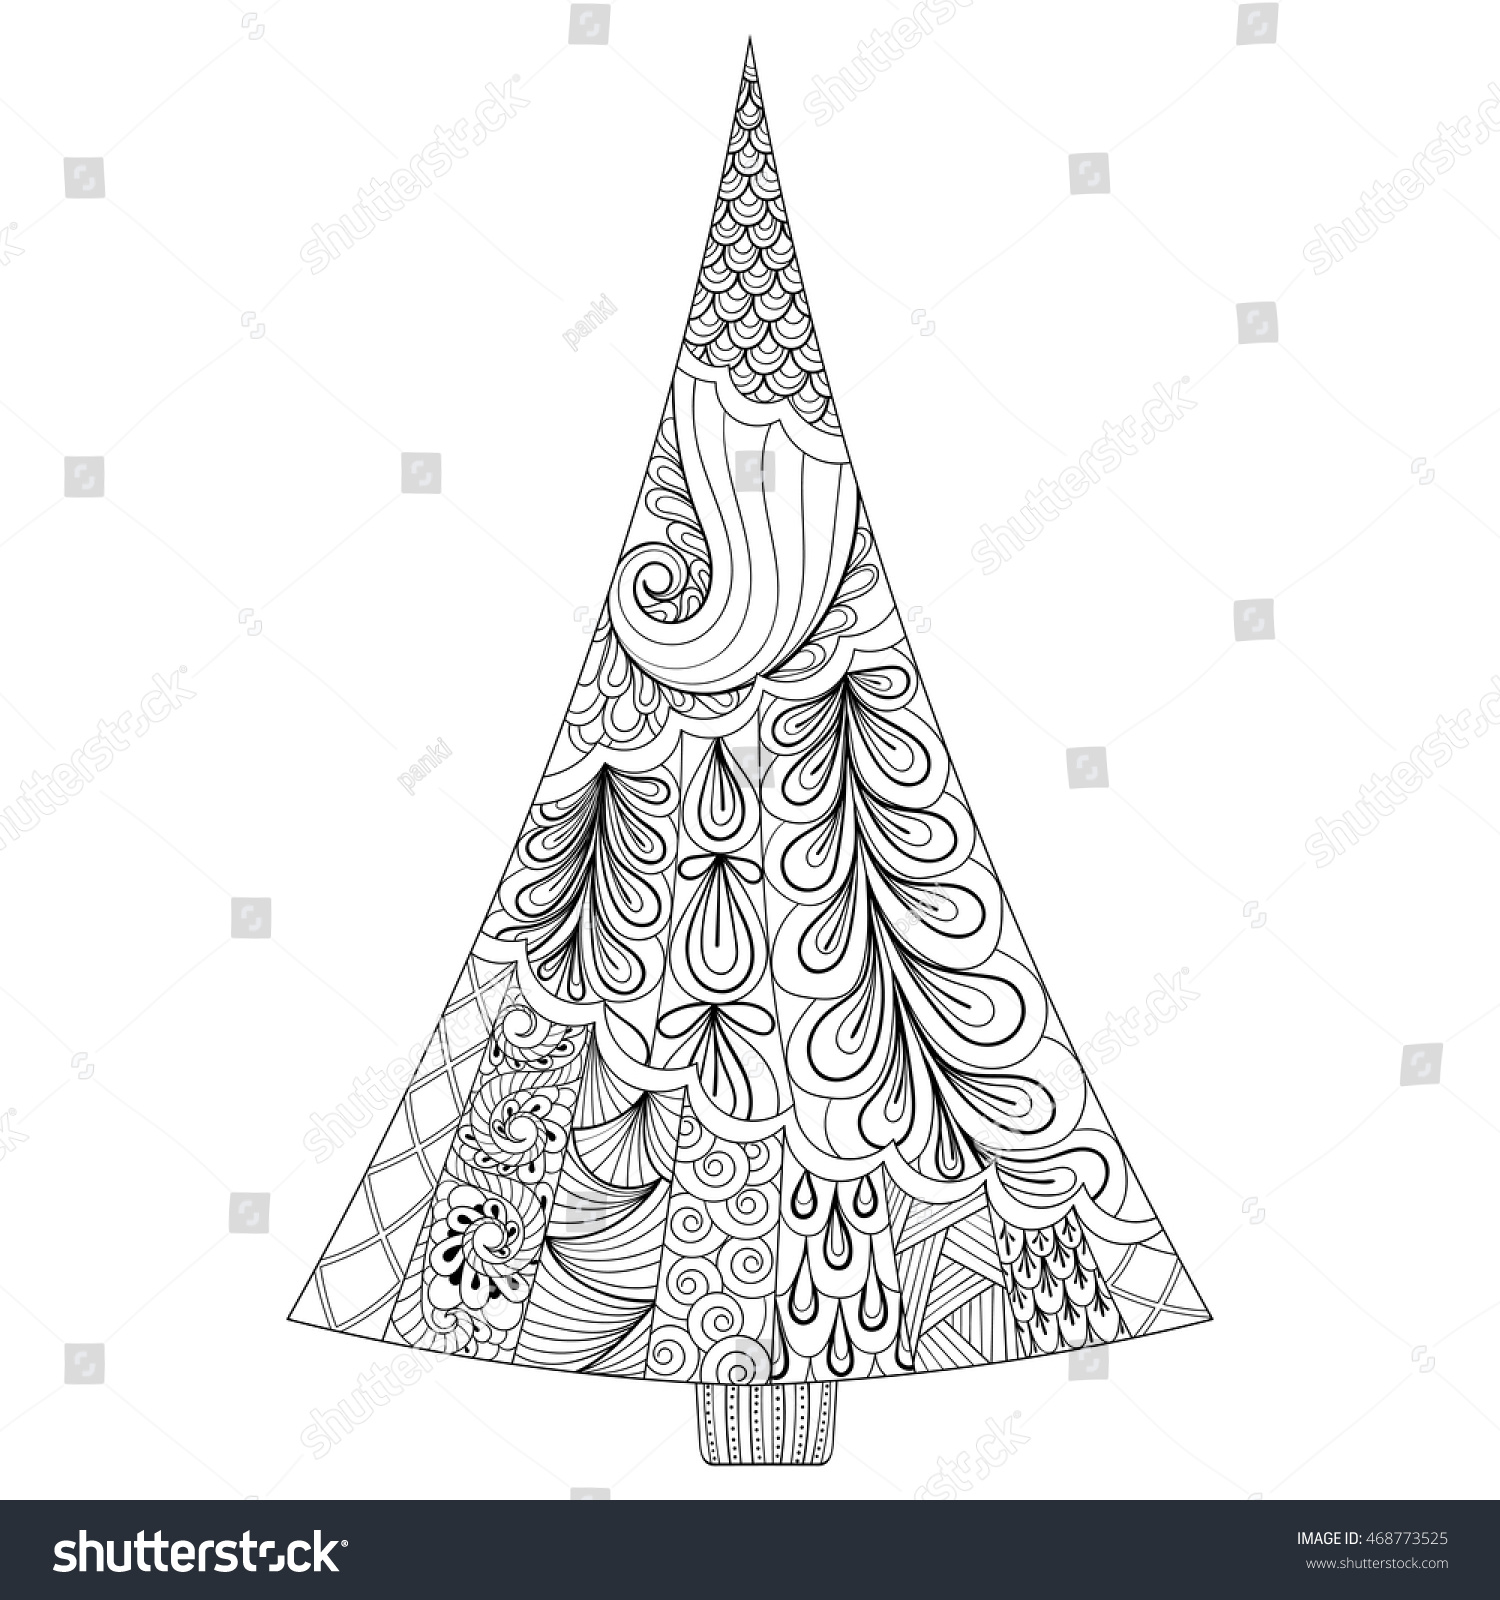 Zentangle Stylized Christmas Tree Freehand Ethnic Vector Illustration For Adult Coloring Pages Holiday Concept